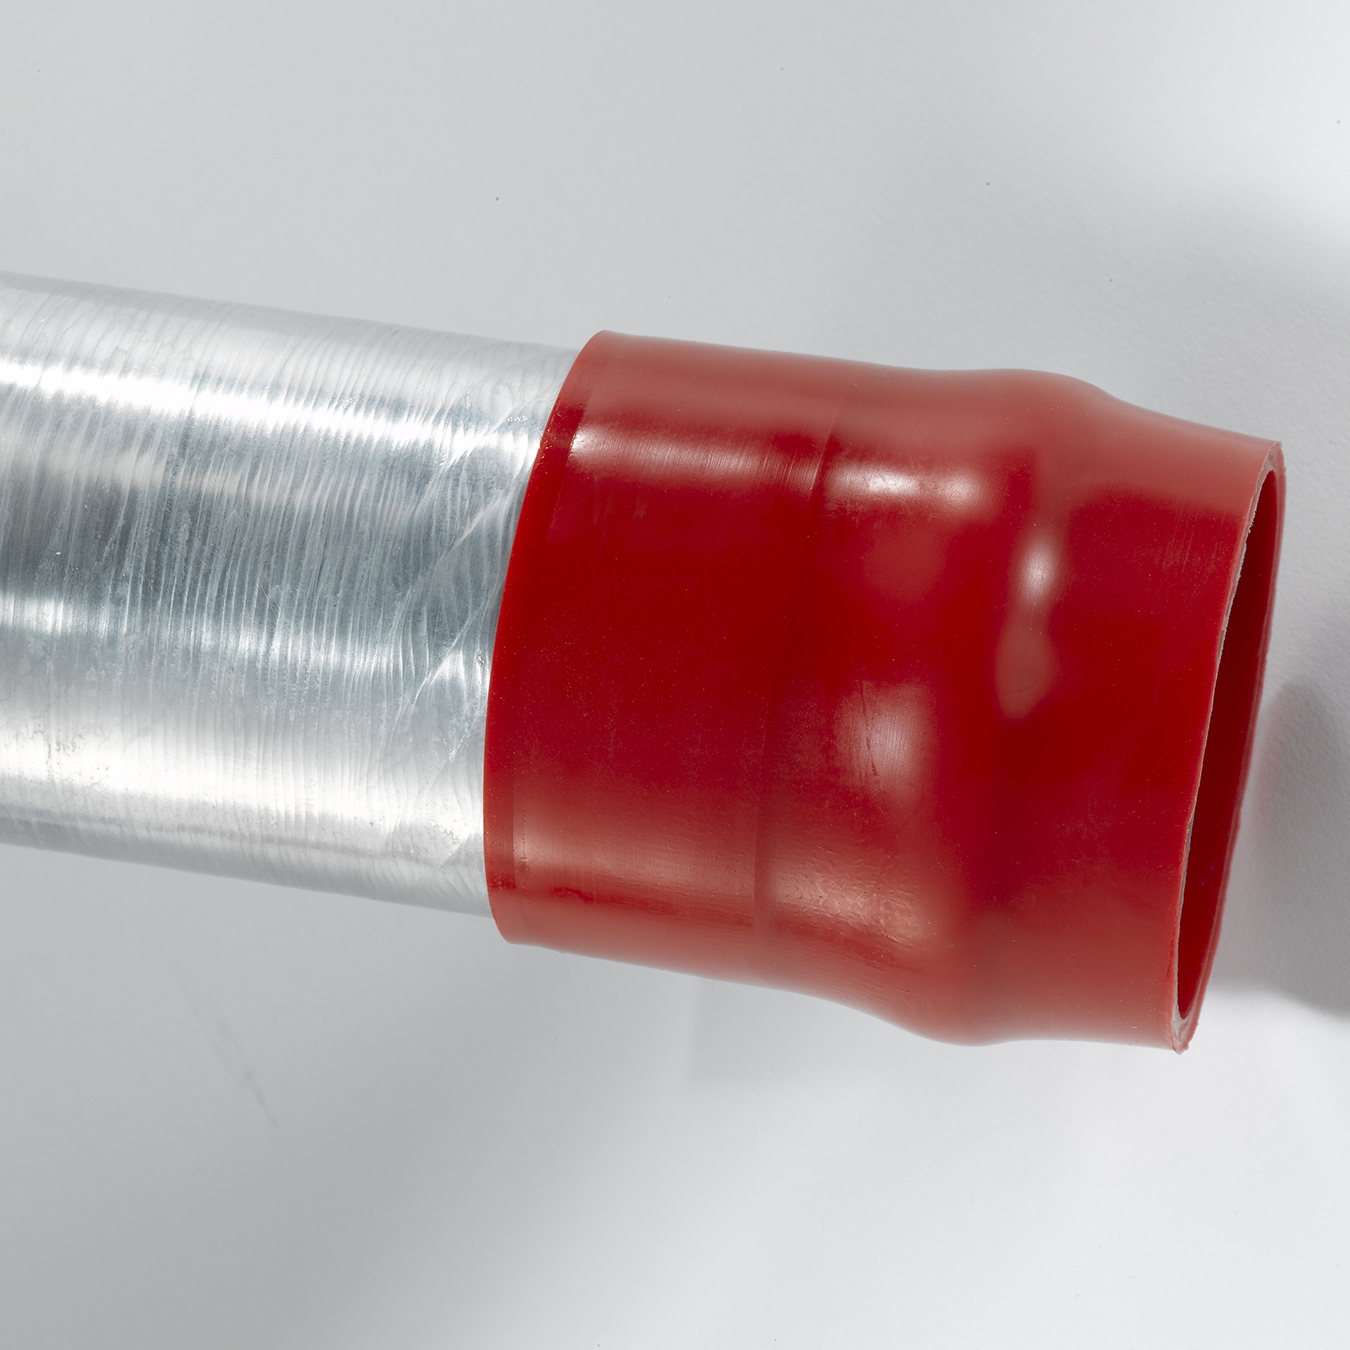 Image of OMG SpeedTite® Roof Drain Seal